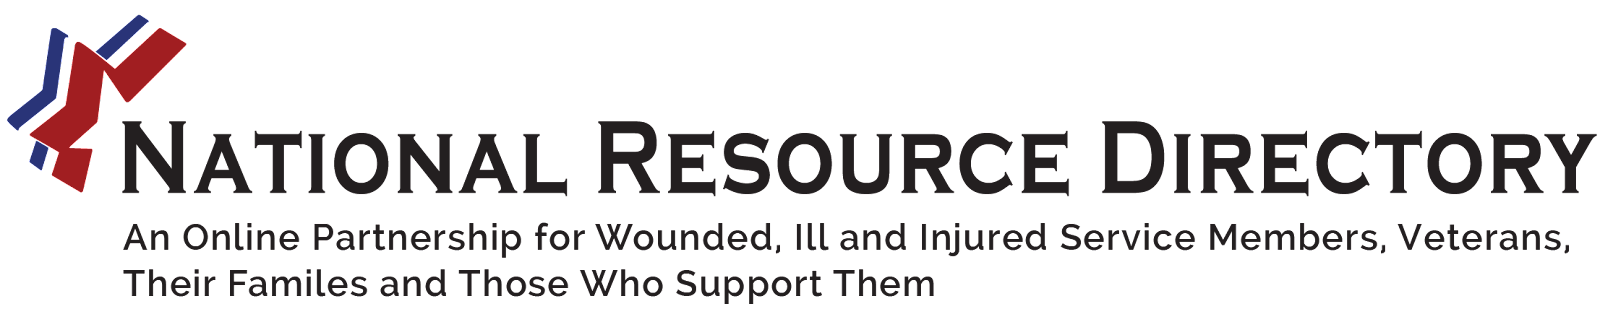 National Resource Directory.png